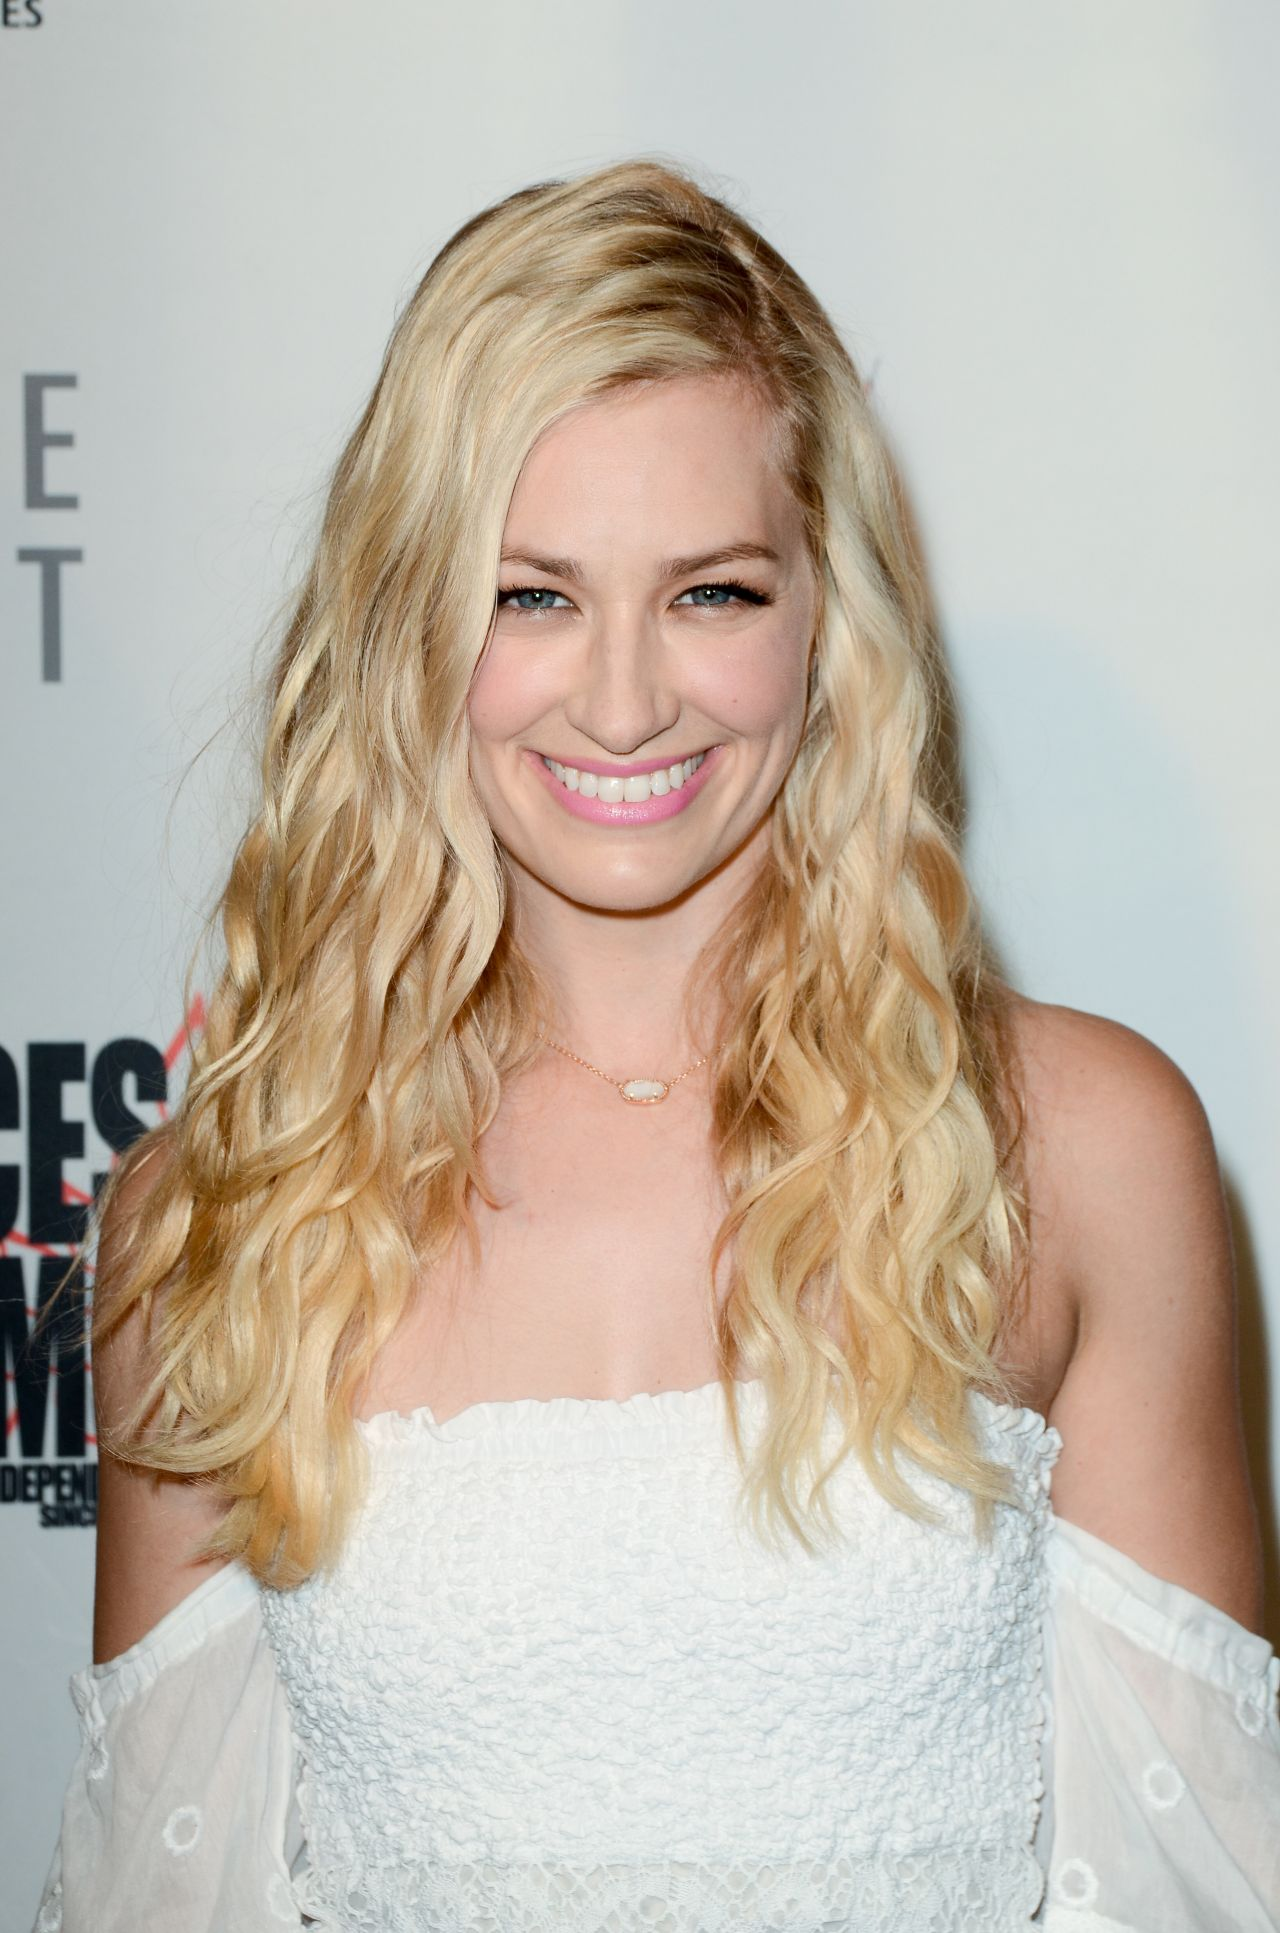 BETH BEHRS at Varietys Unite4:humanity - HawtCelebs